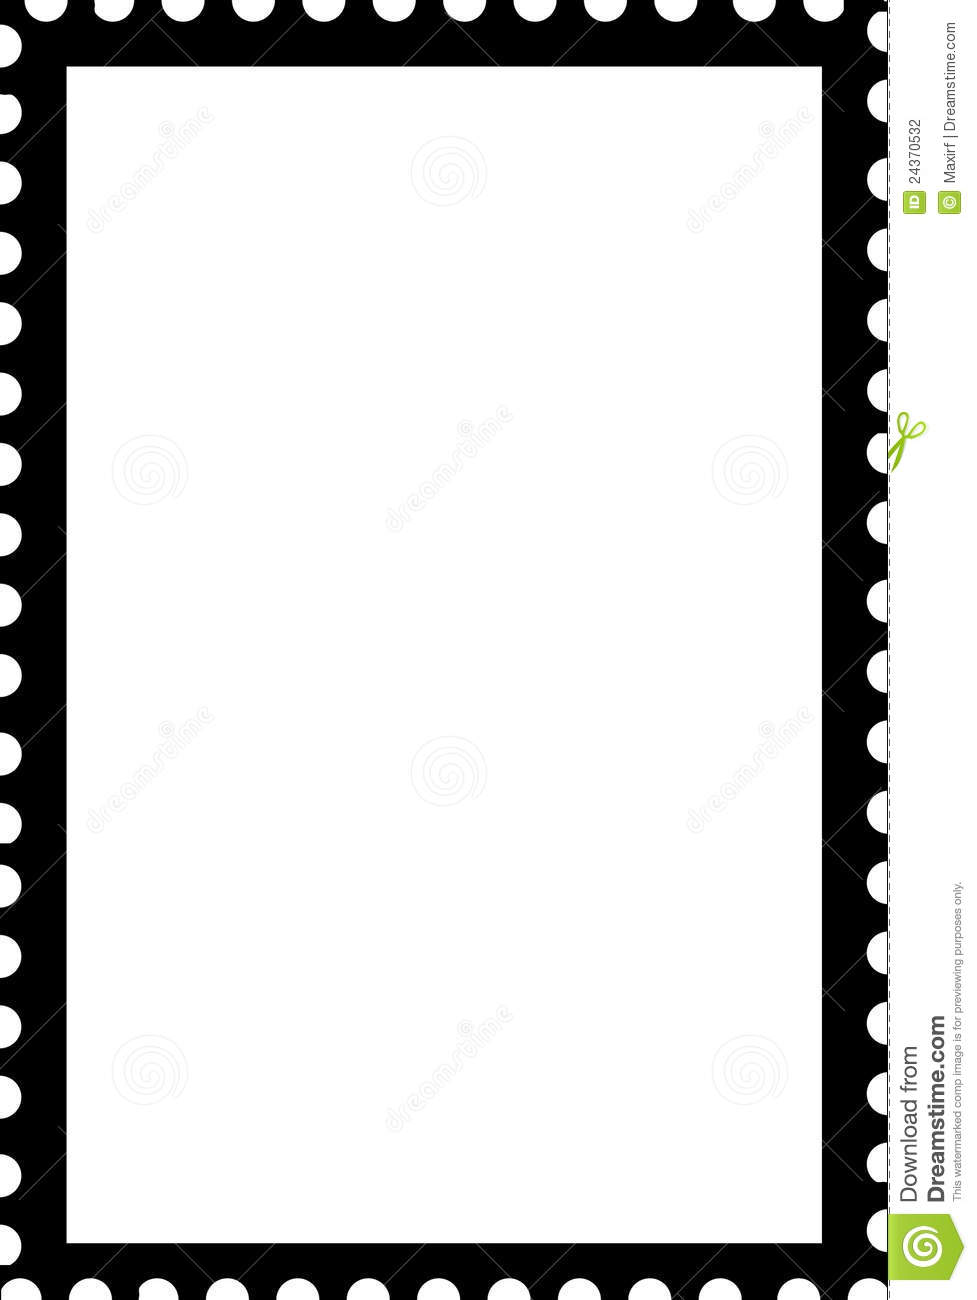 Stamp Outline Clipart.